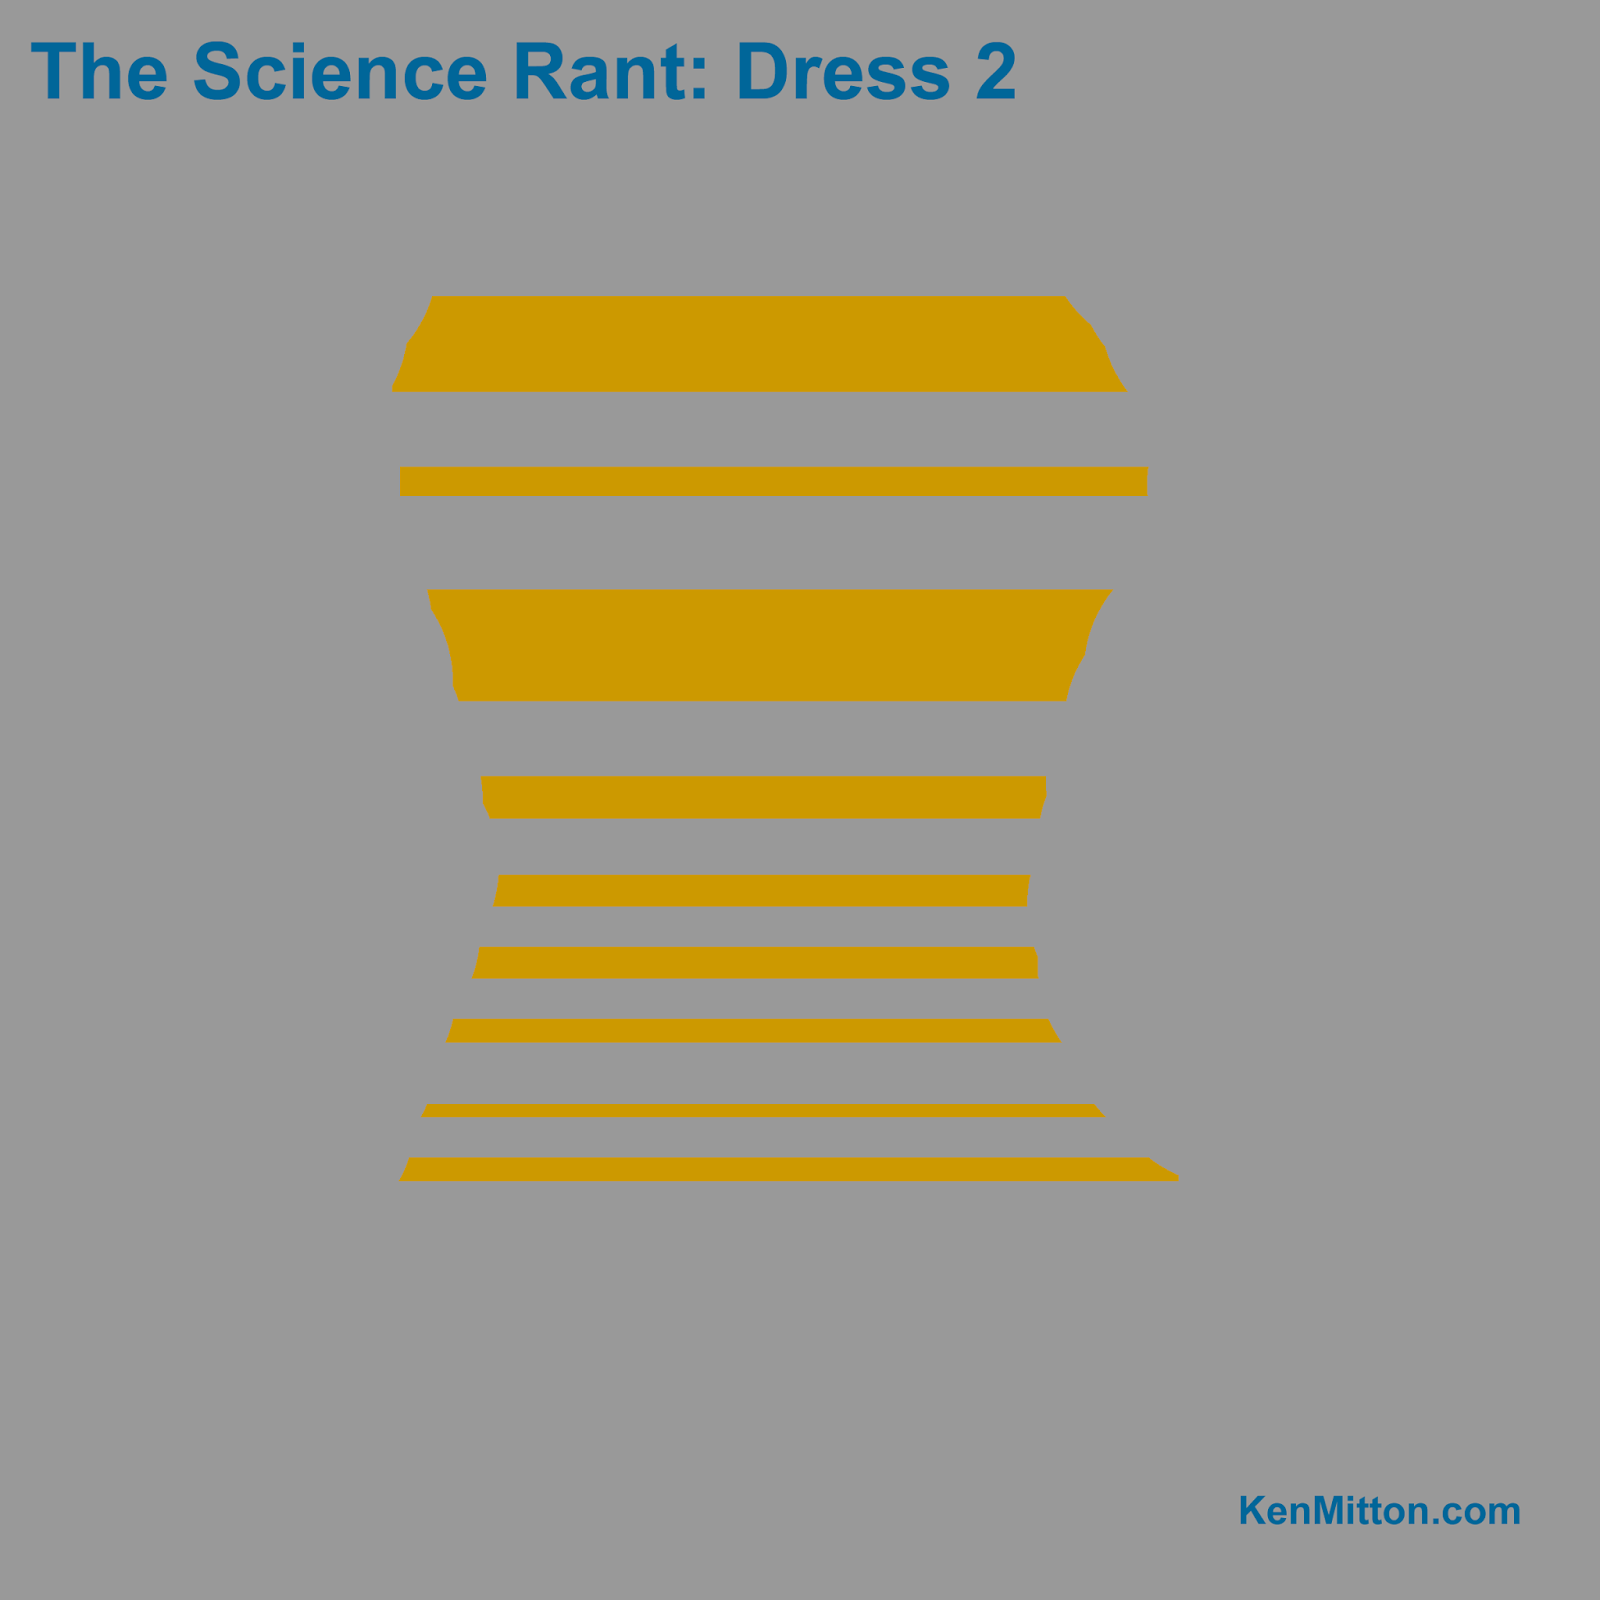 The dress explained - Black Or Gold Dress Explained By Your Friendly Neighborhood Vision Scientist Why Black To Some And Gold To Others It Has To Do With How Your Eyes Work